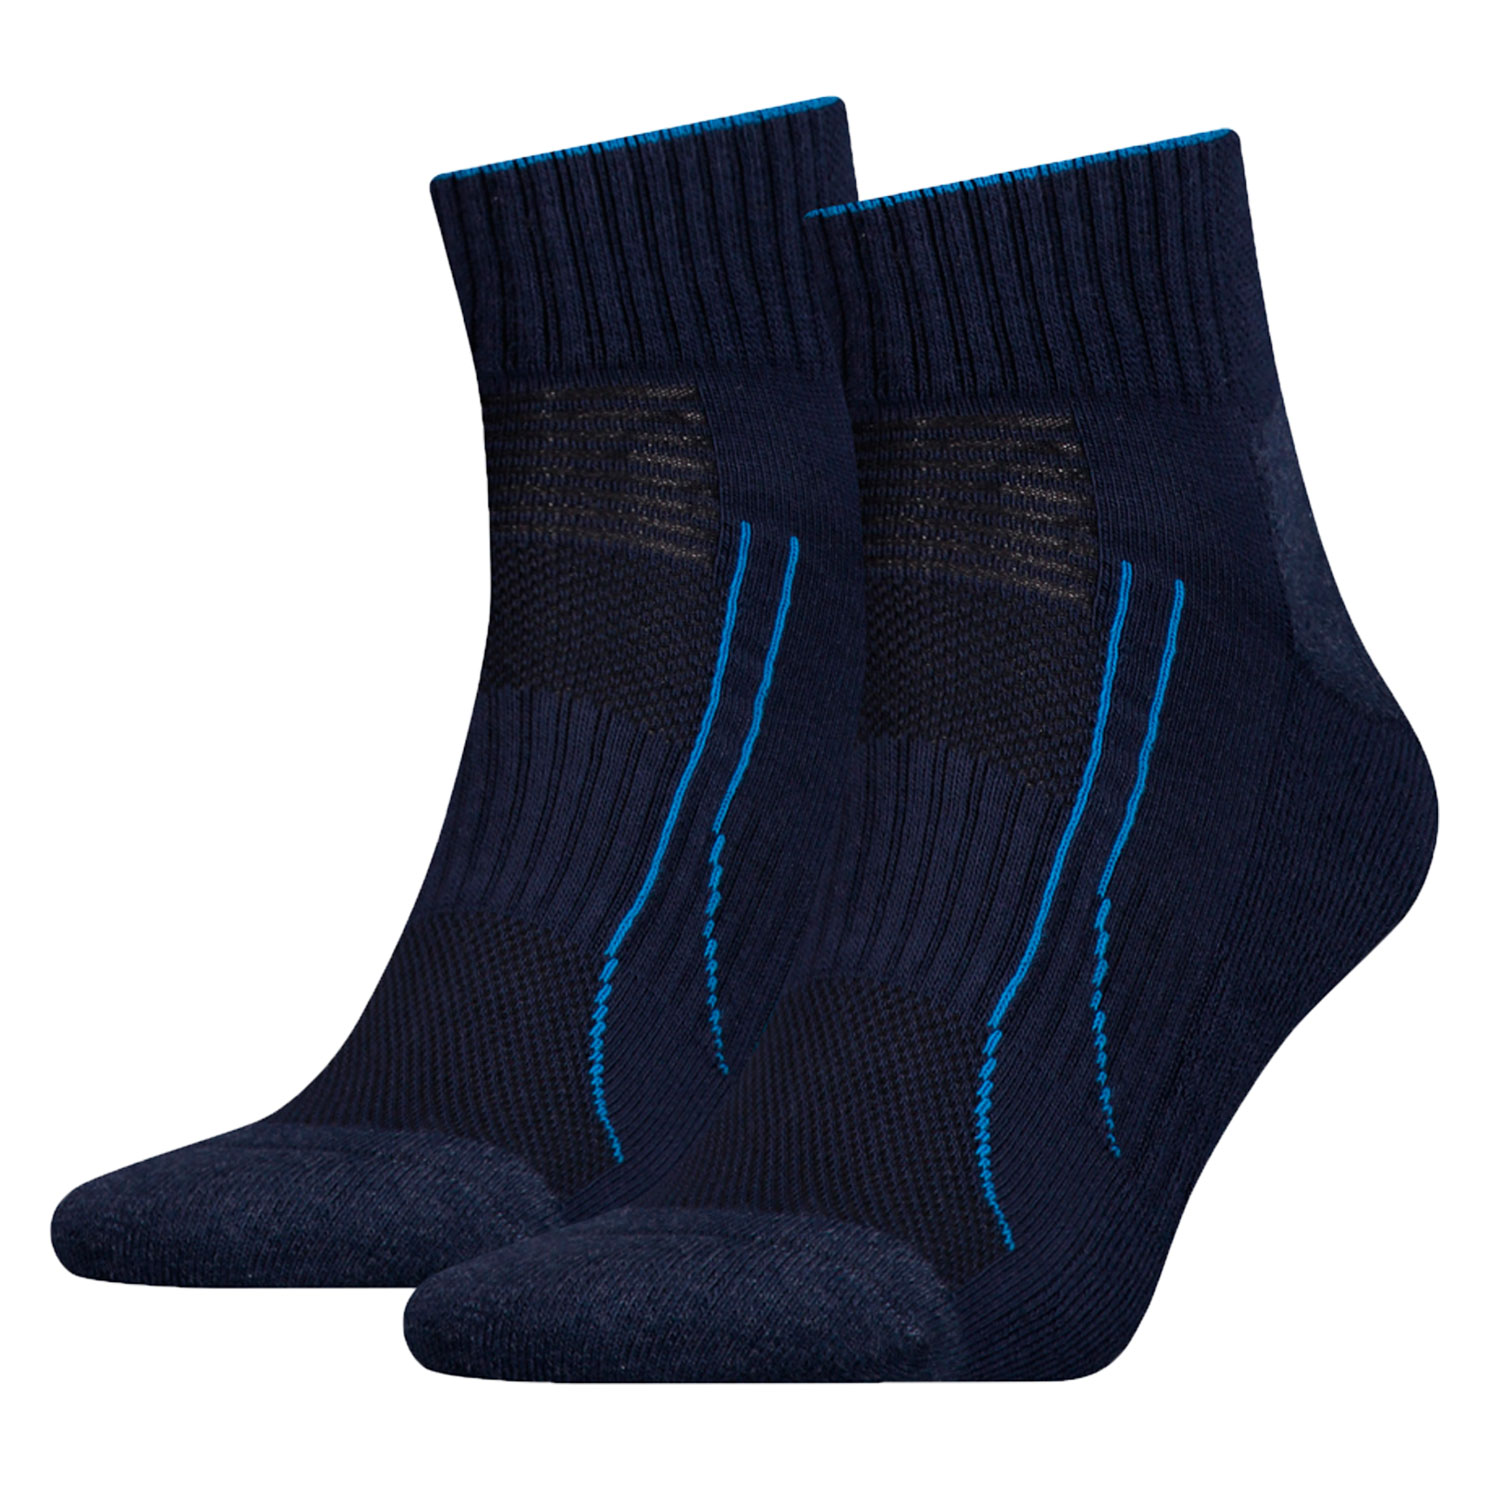 Puma Performance Train Quarter 6 Paar, Kurzsocken 261008001 – Bild 3